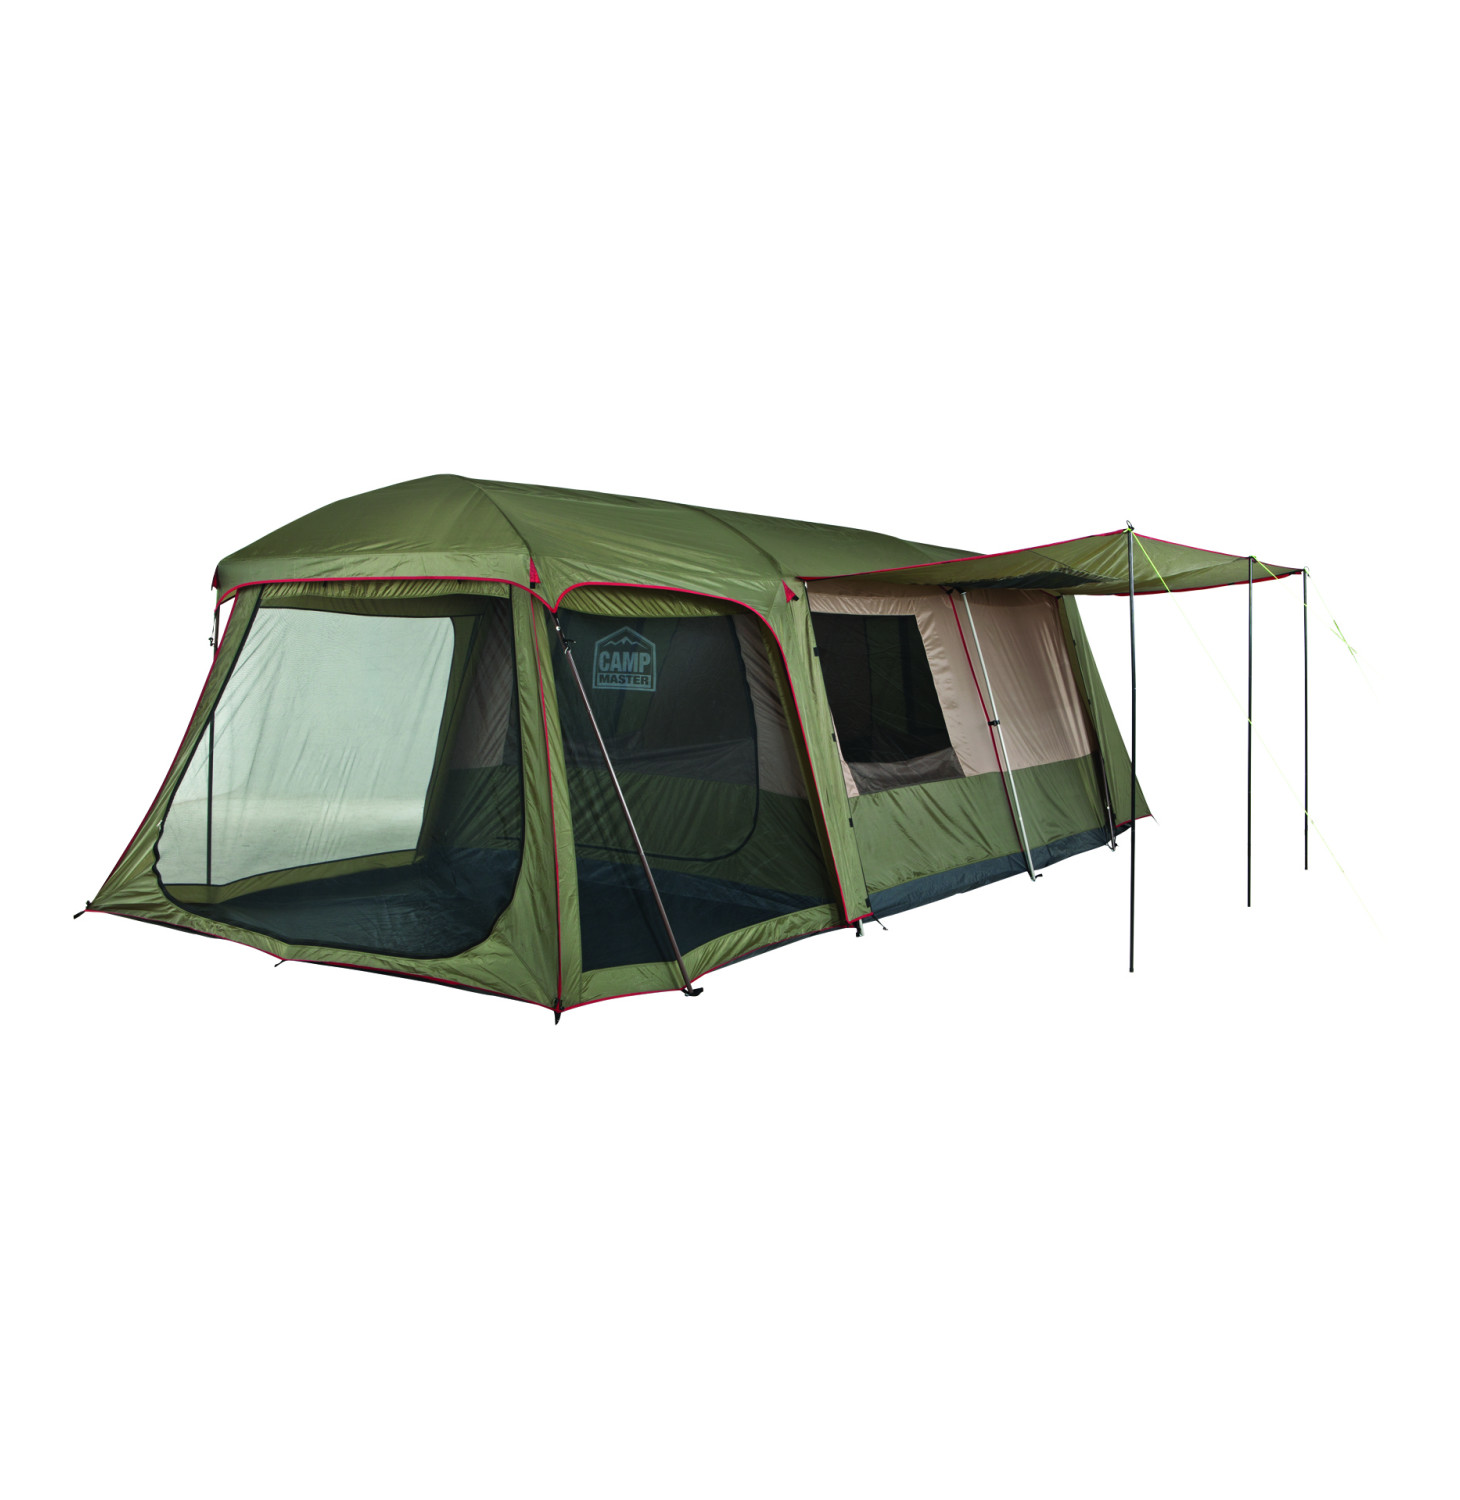 CAMPMASTER. FAMILY CABIN 900. 9 Sleeper. New demo tent.